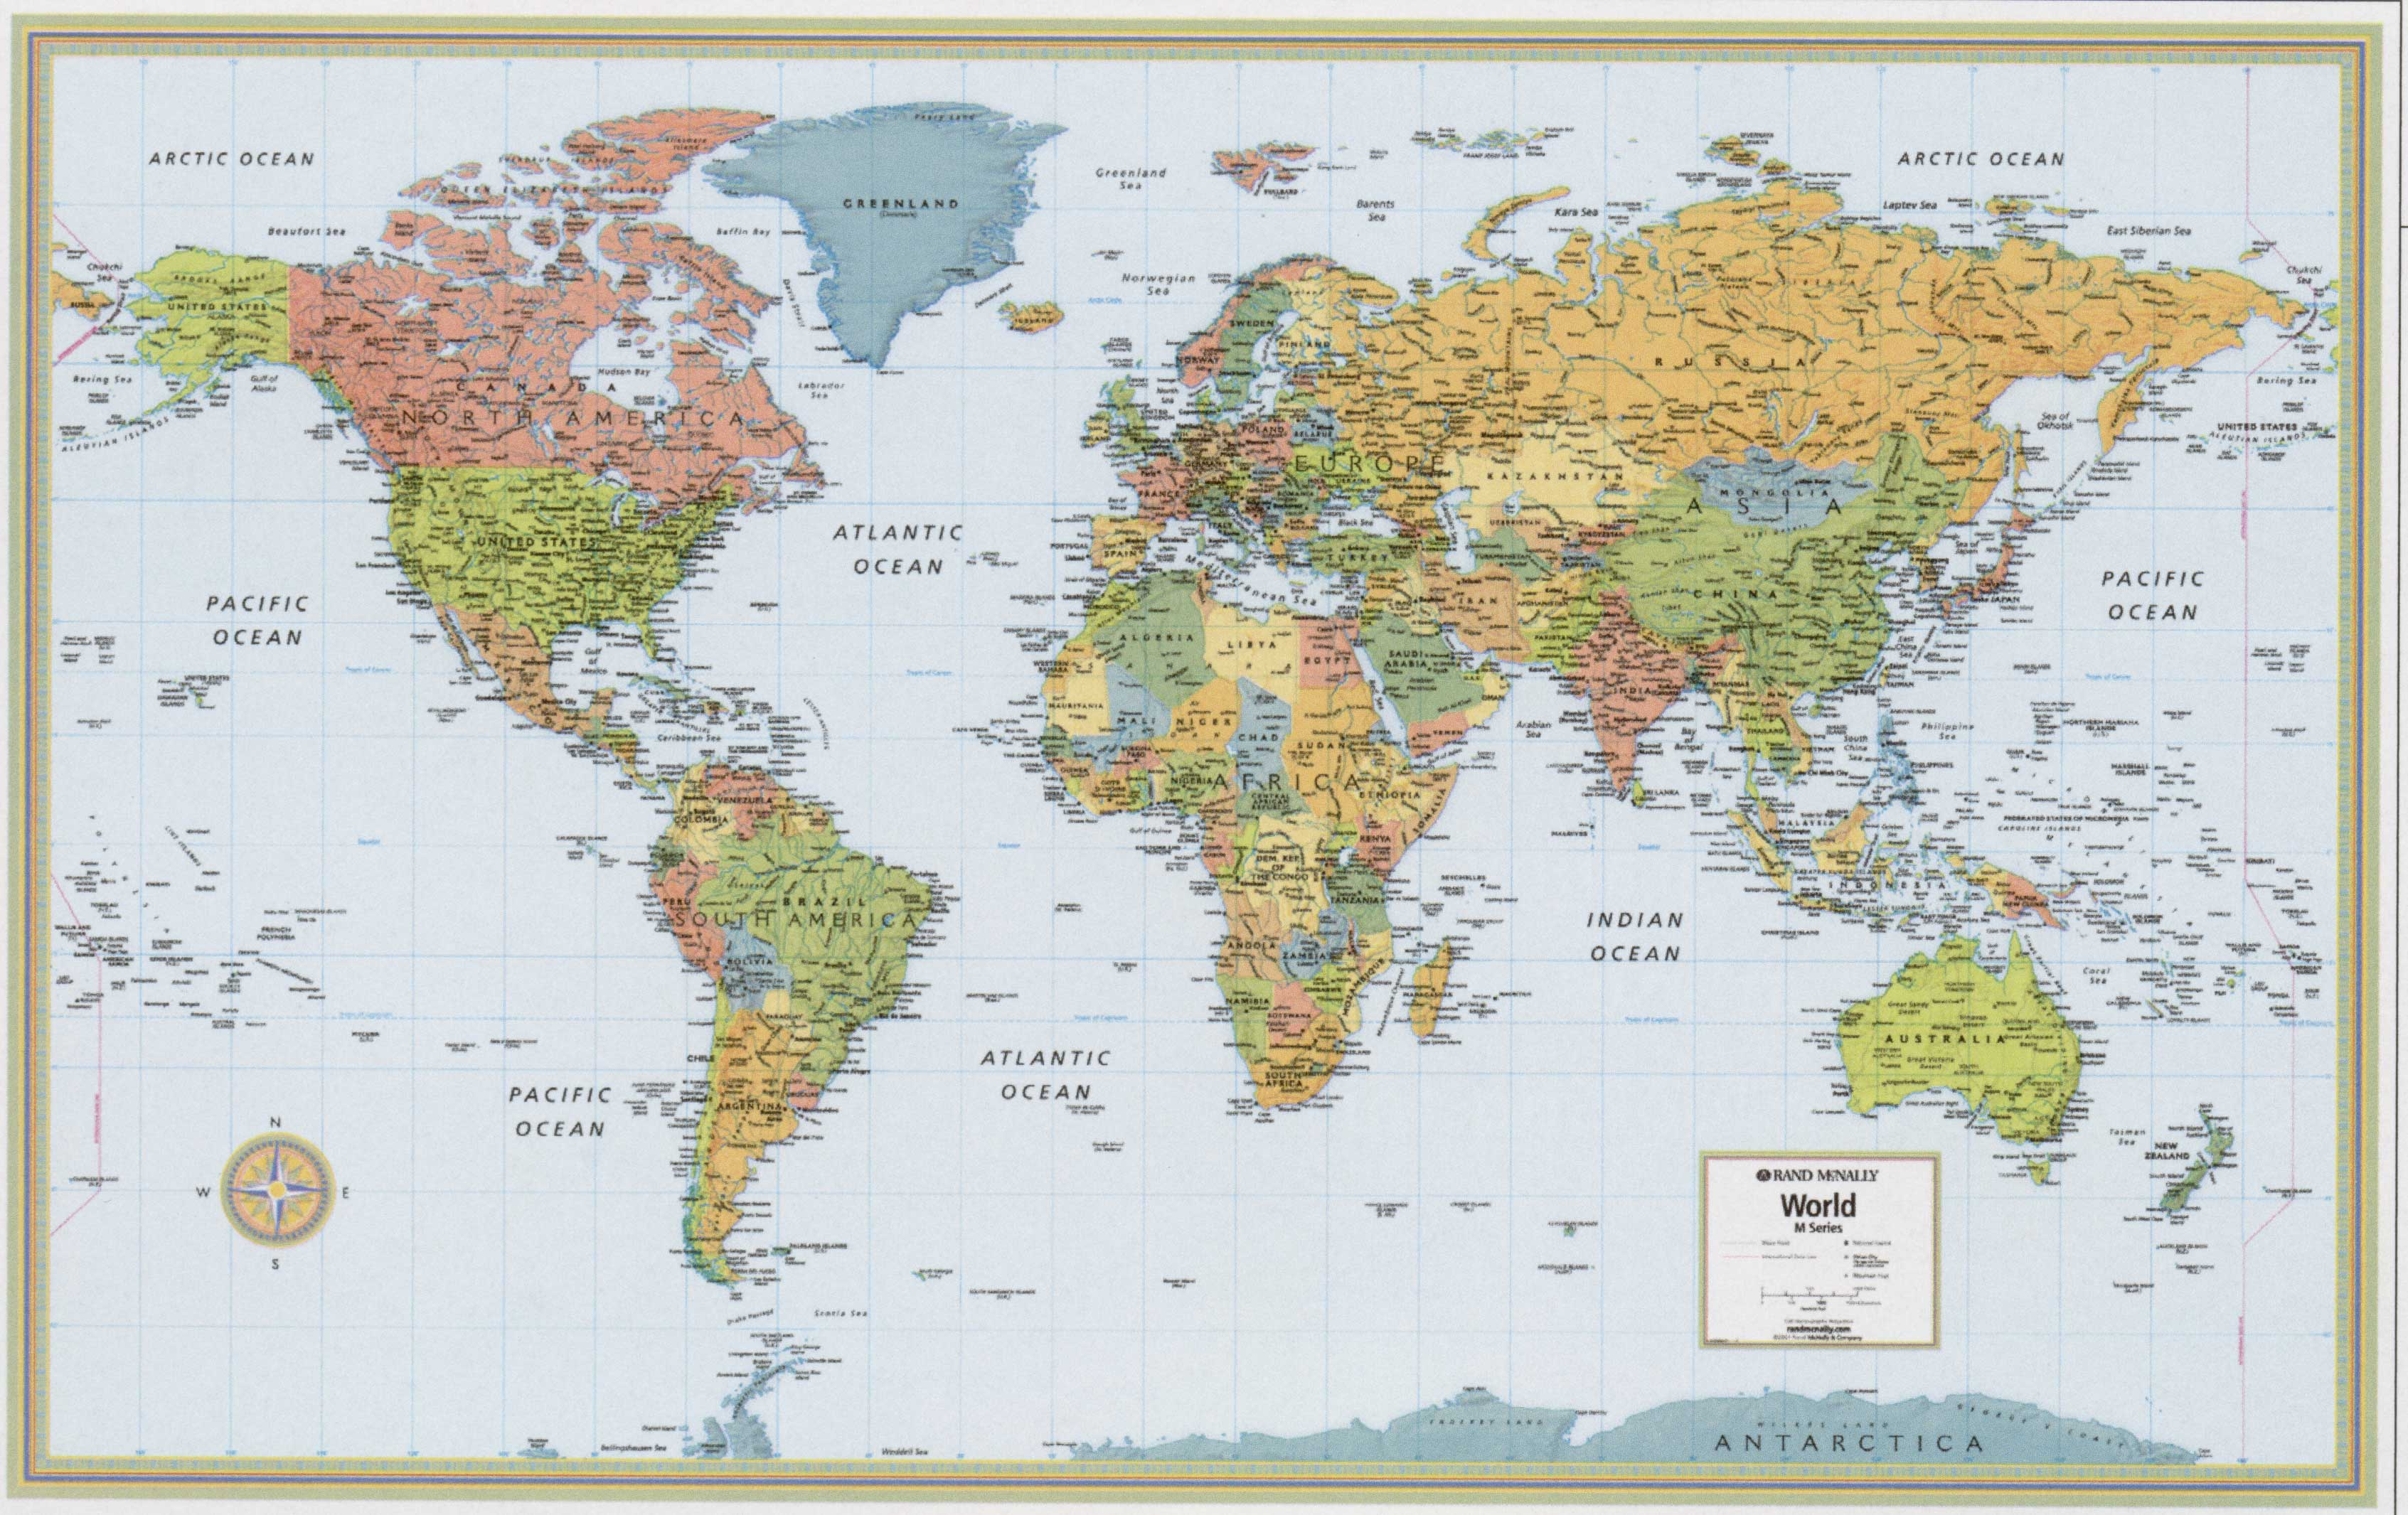 Free world map tiredriveeasy free world map gumiabroncs Images